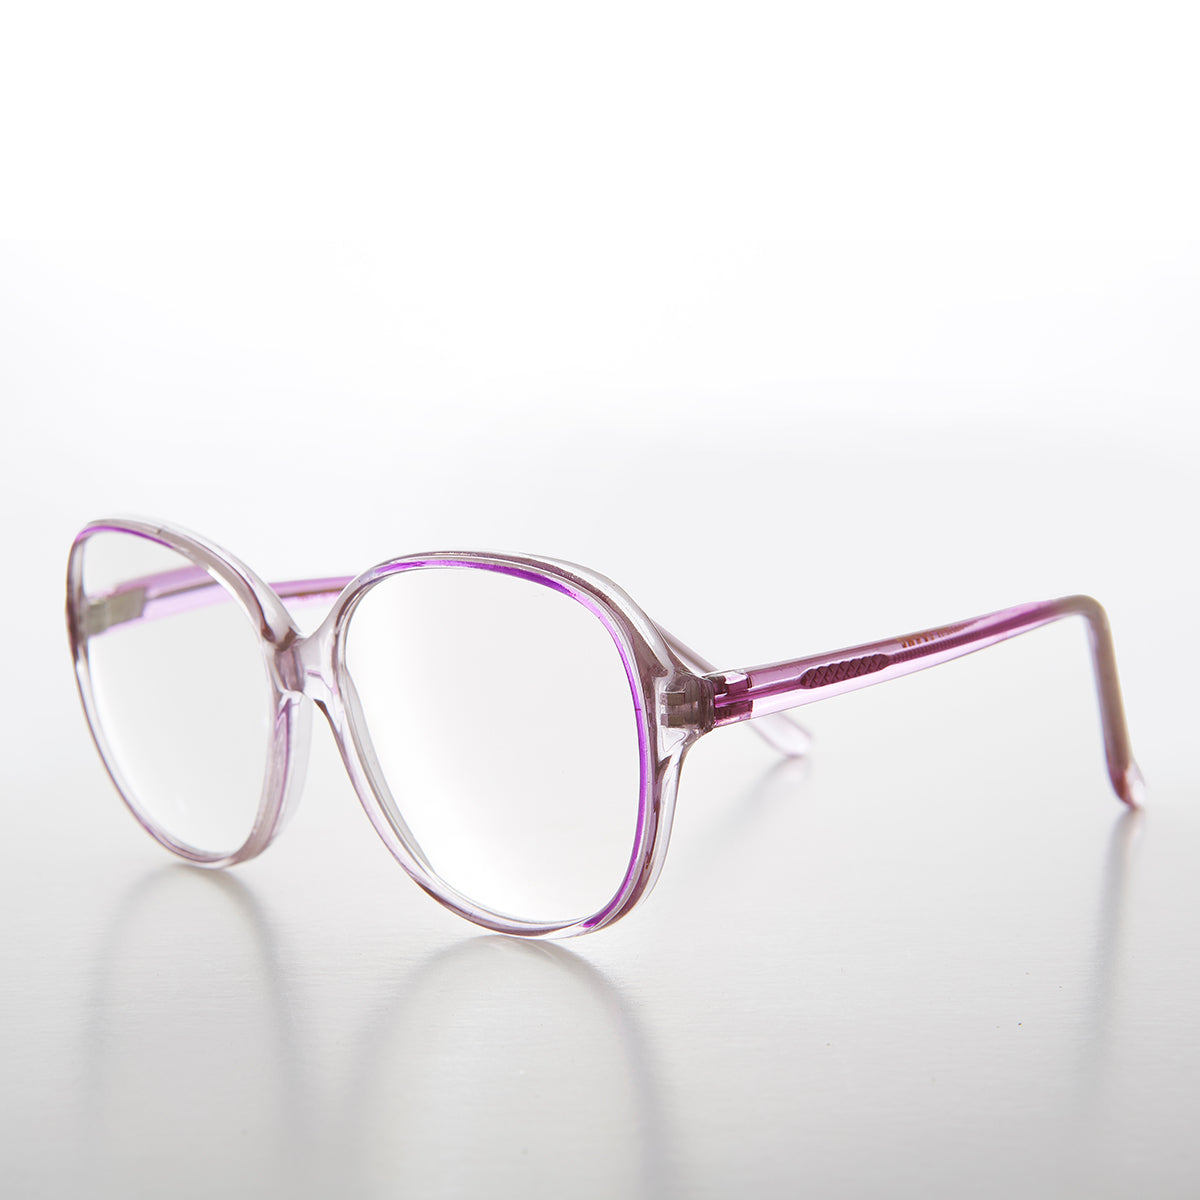 Big Clear Retro Reading Glasses with Purple Color Accent